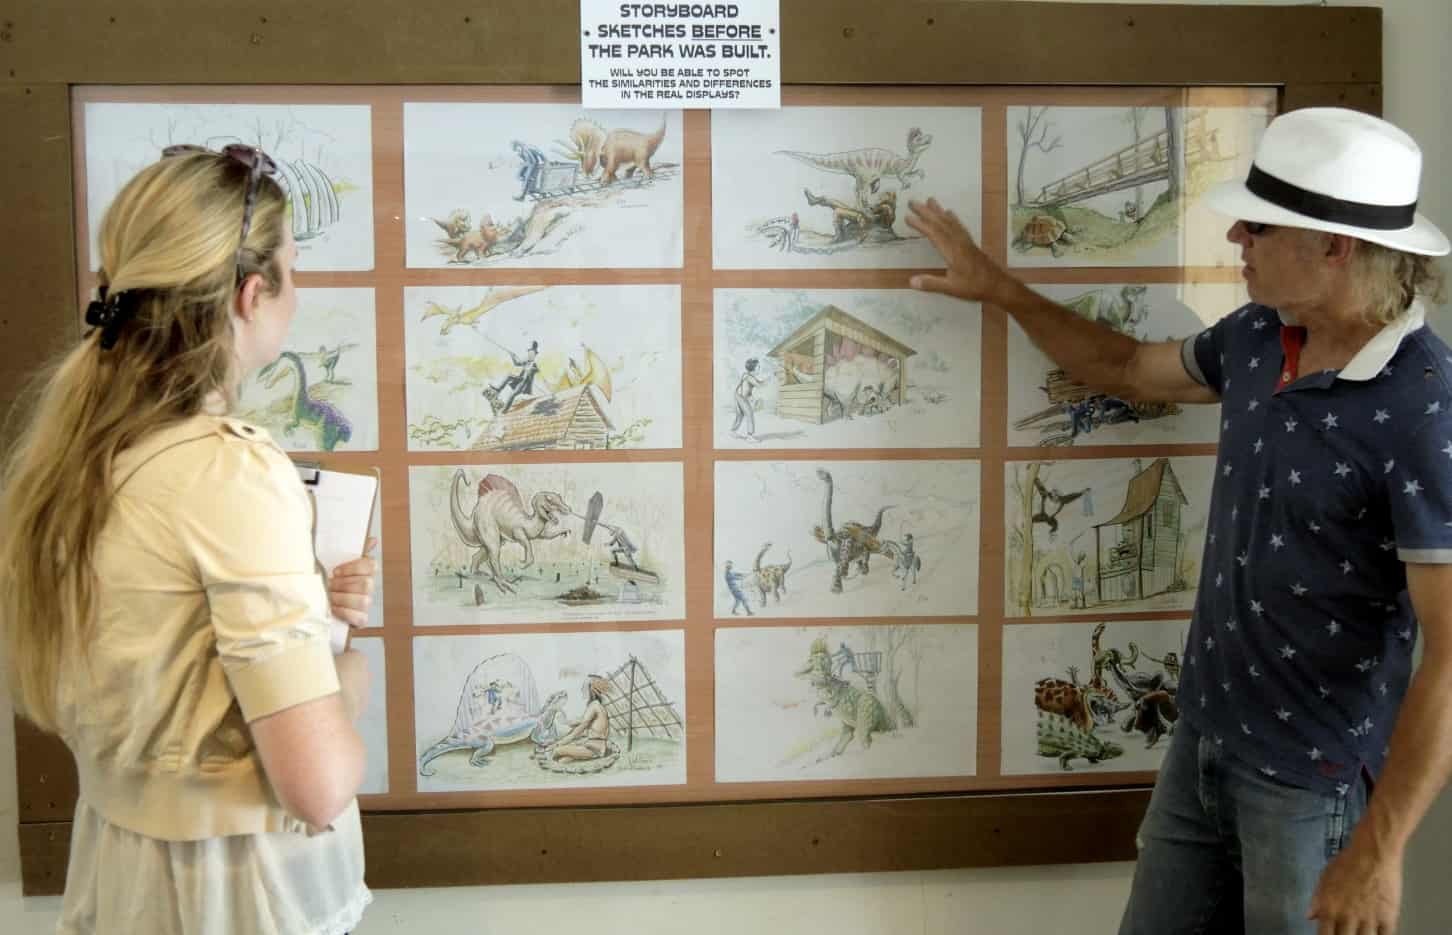 Mark-Cline's-Dinosaur-Kingdom-II-Combines-Civil-War-Soldiers-with-Dinosaurs-mark-cline-with-his-park-storyboard